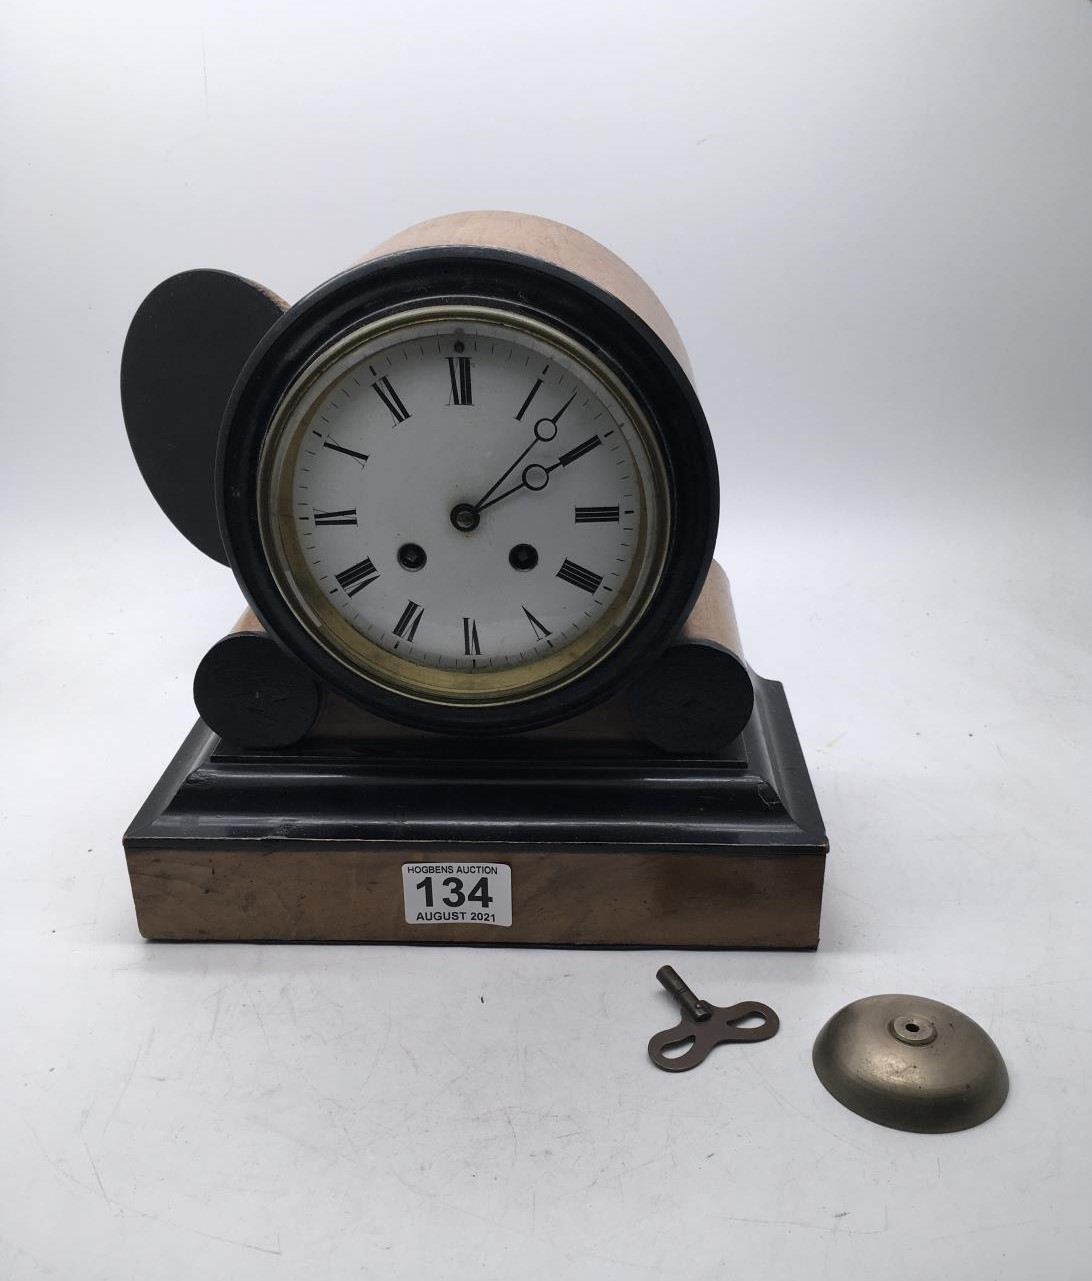 """19c drum mantle clock ebonised and mahogany, 9.5"""" tall 8 day movement striking on a bell appears"""